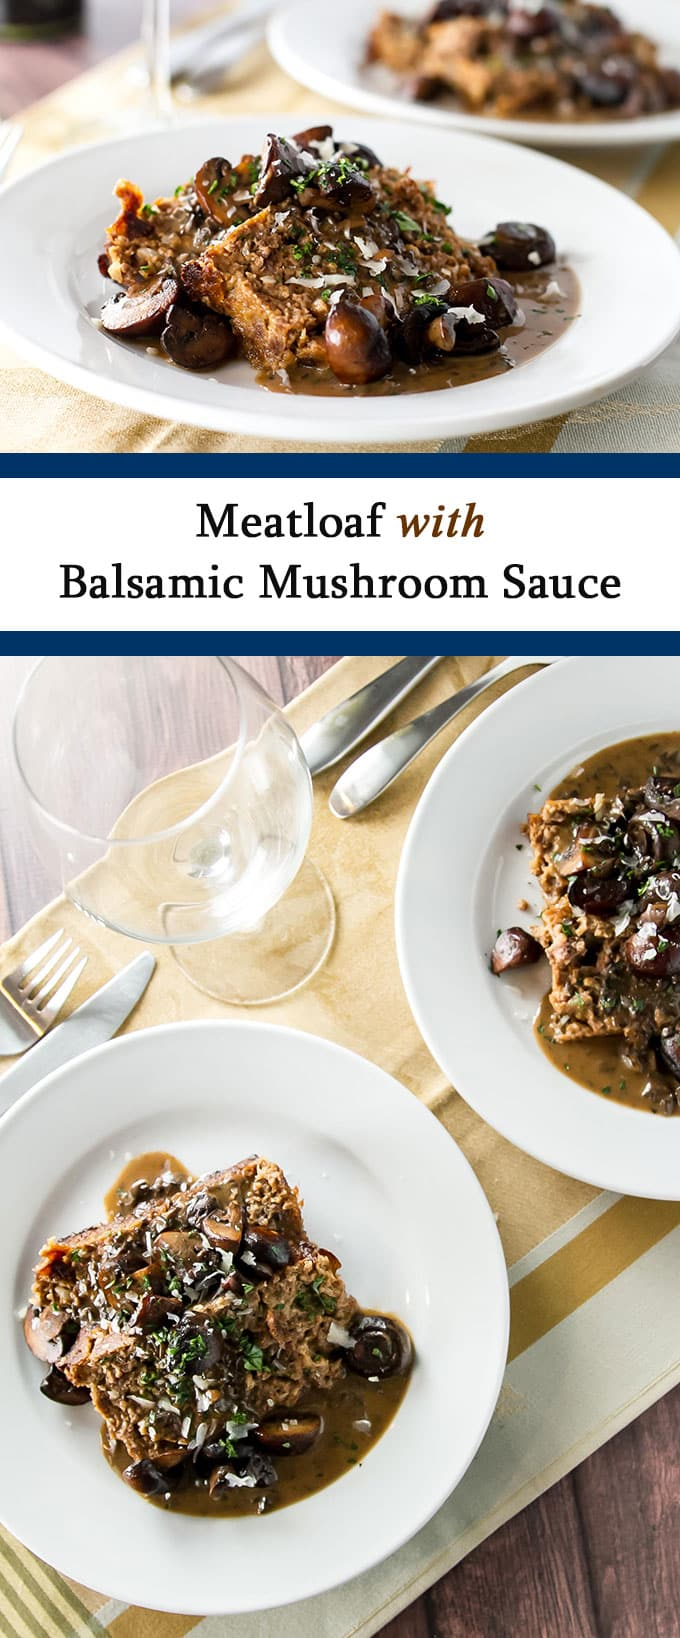 Juicy meatloaf topped with a rich and creamy balsamic mushroom sauce | girlgonegourmet.com